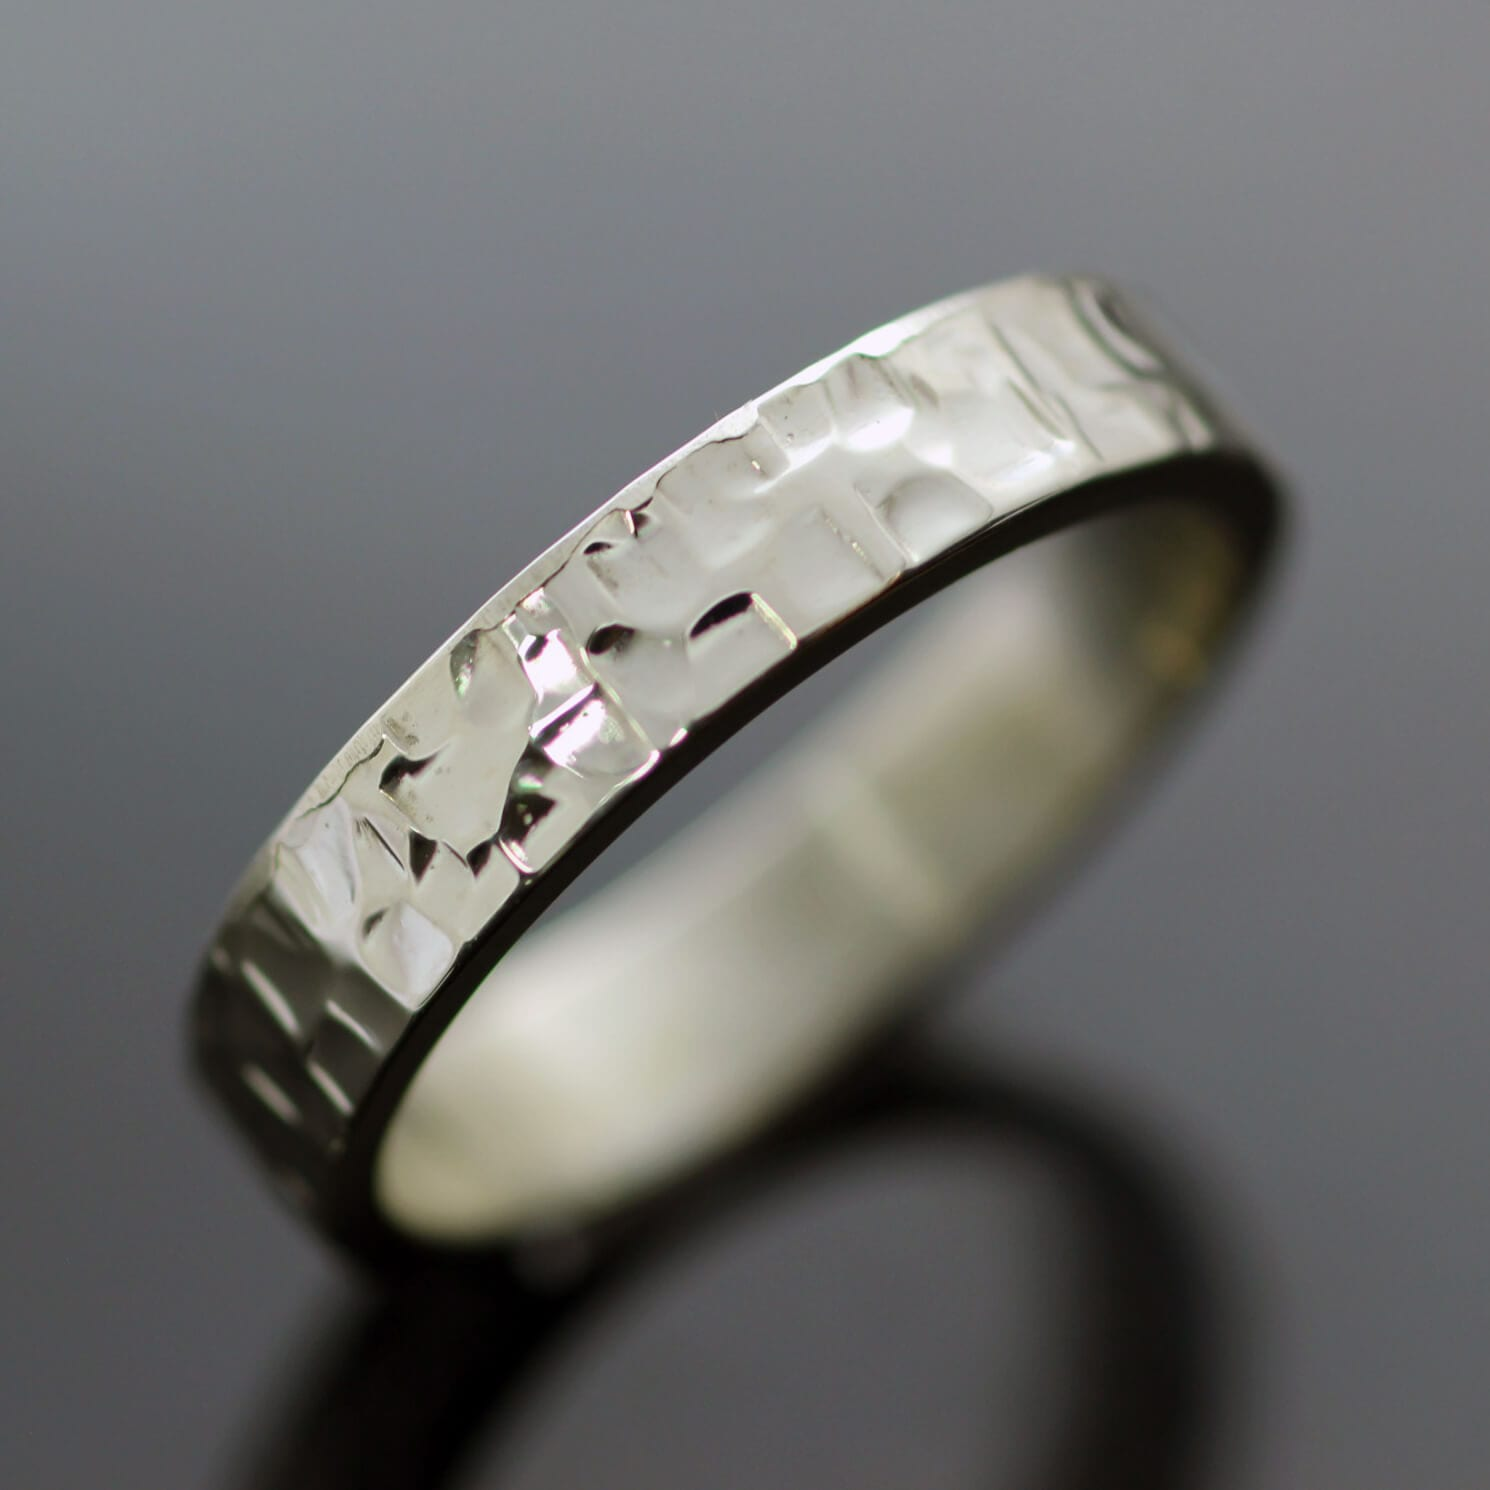 Unique modern chunky silver ring handmade textured flat band